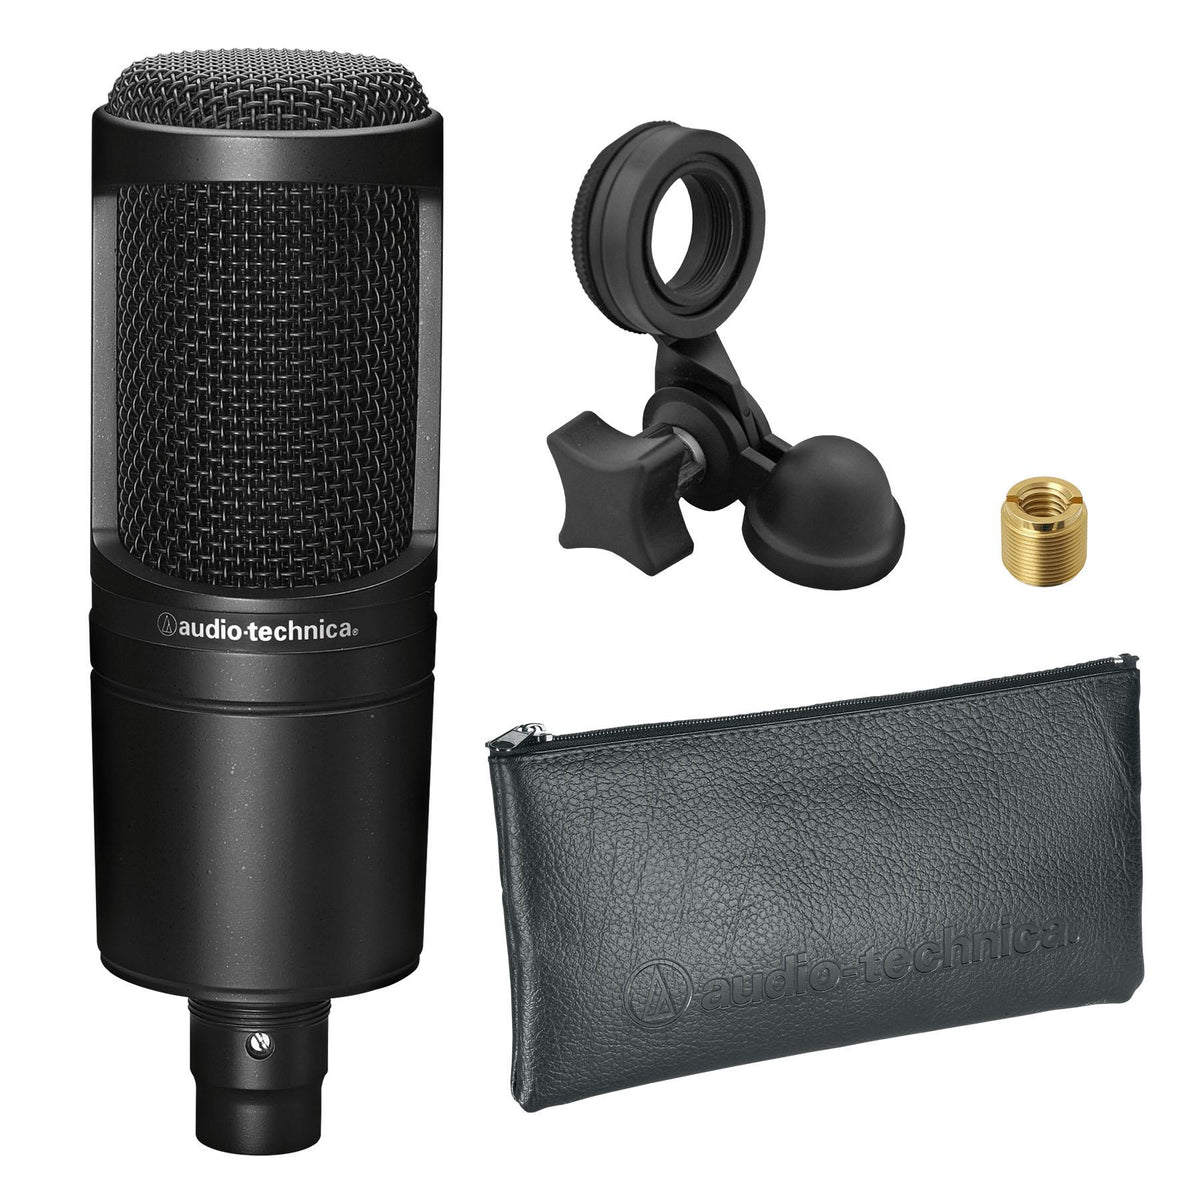 Audio-Technica AT2020PK Streaming/Podcasting Pack with ATH-M20X Headphones